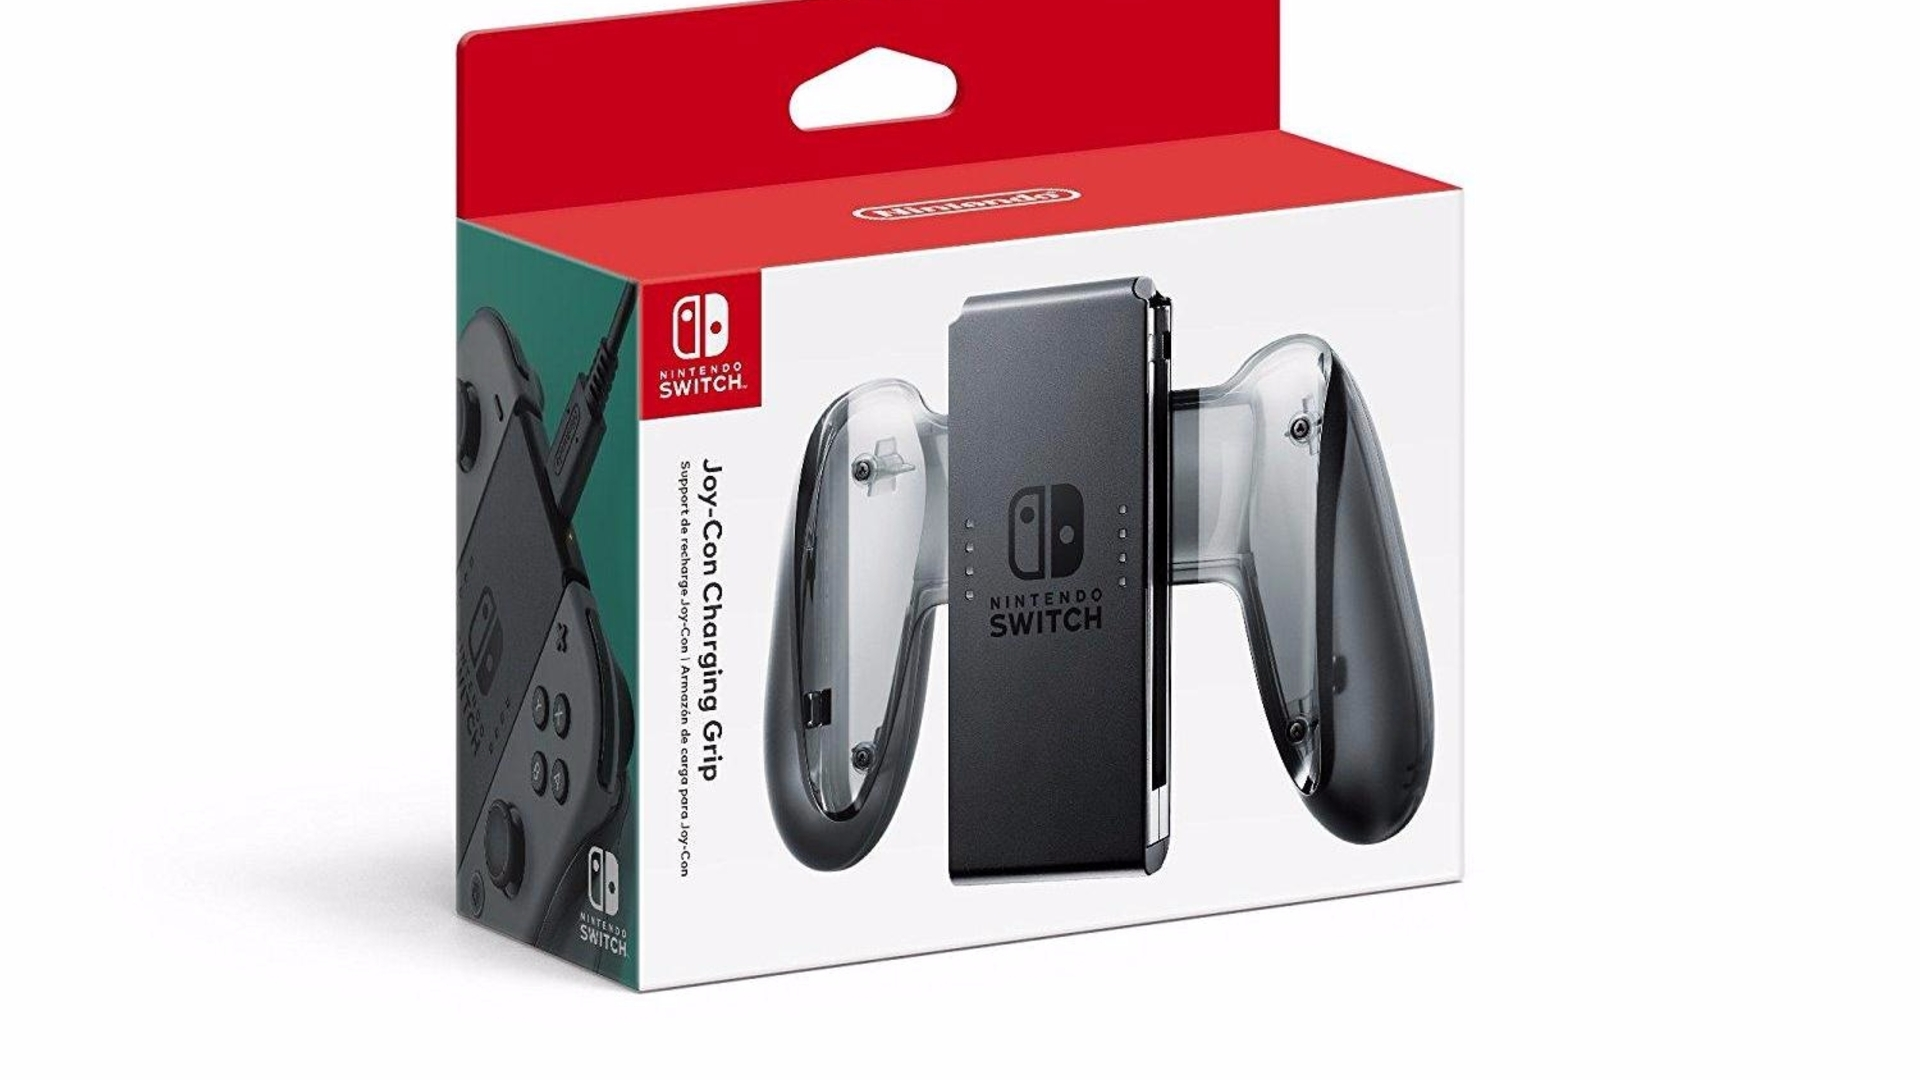 Nintendo Switchs Bundled Joy Con Grip Doesnt Charge Controllers Which Wires Connect To What On The Switch And It Makes Sense Me